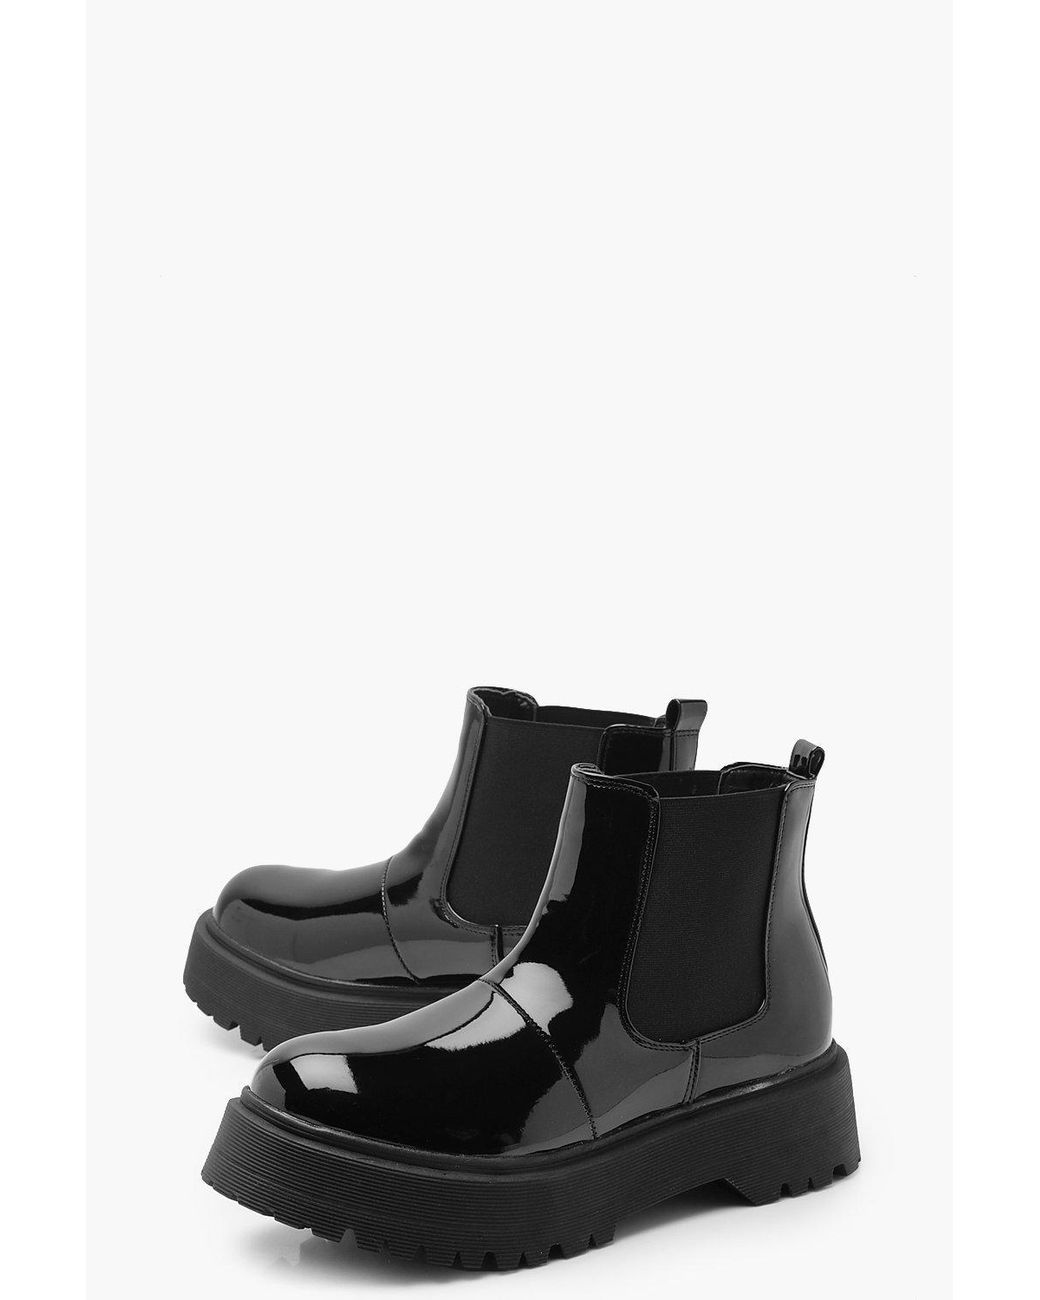 adc946c74883 Lyst - Boohoo Patent Chunky Cleated Chelsea Boots in Black